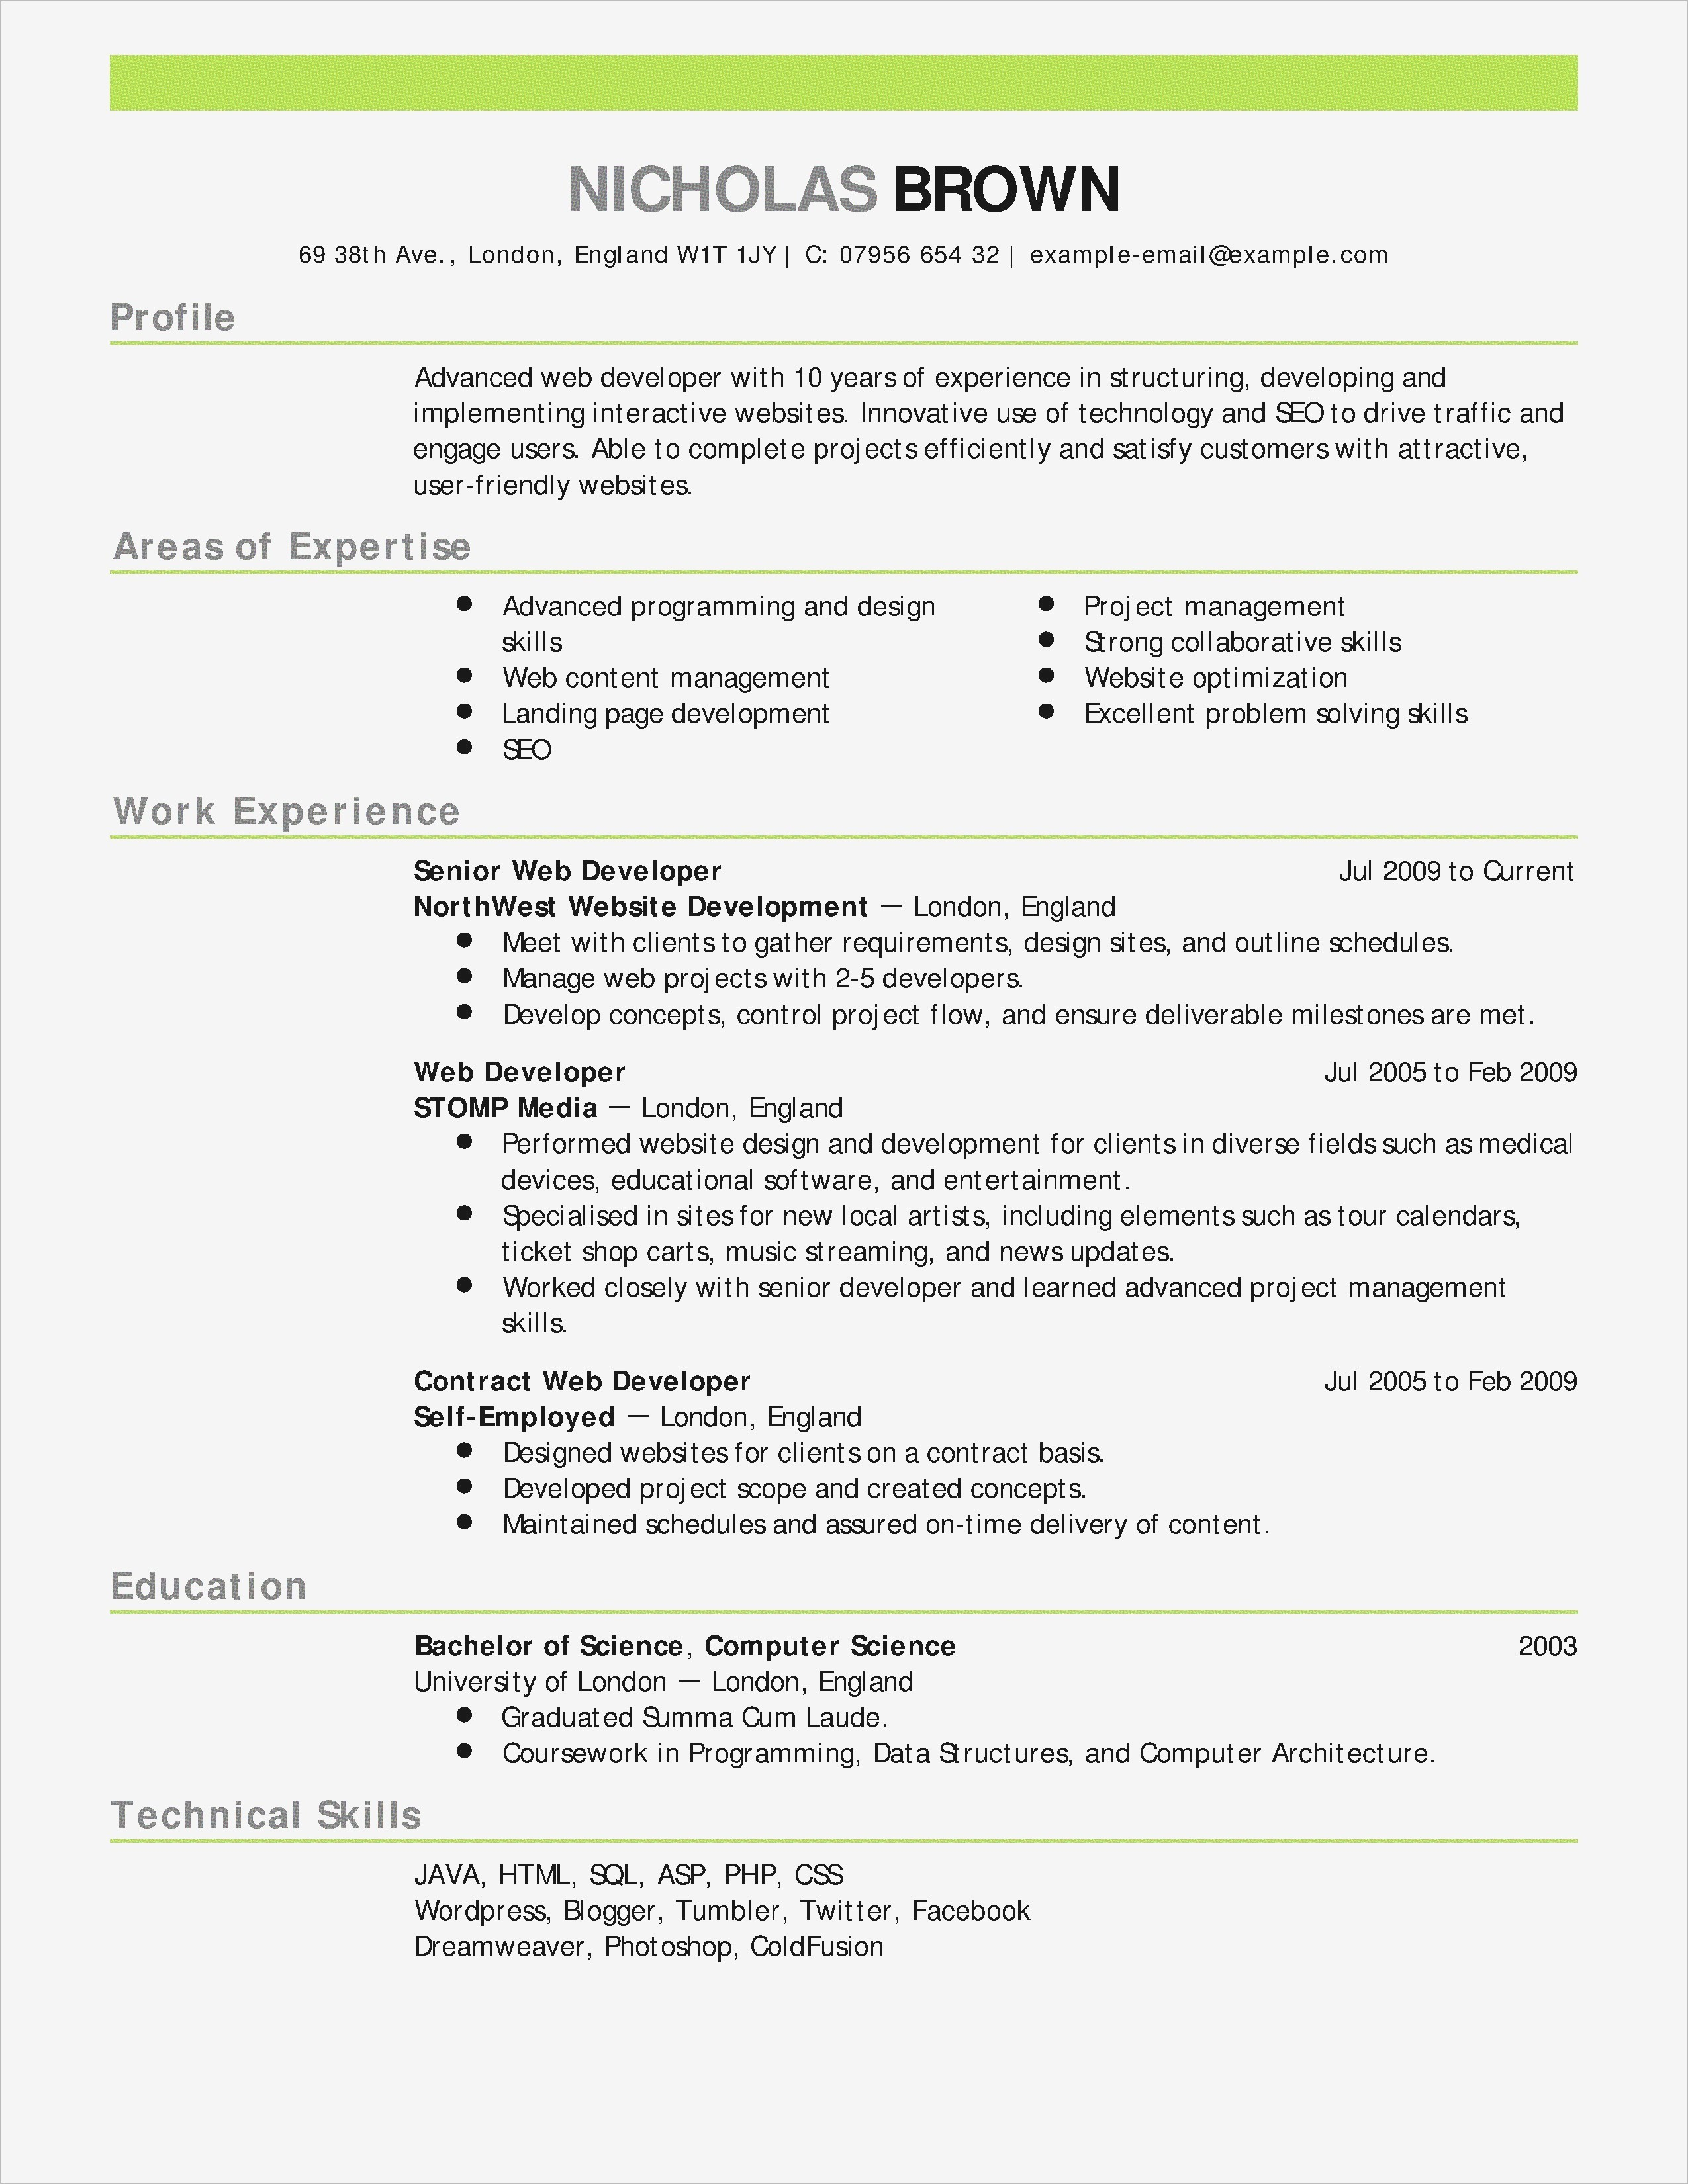 Resume Writing Companies - Cover Page for Resume New Elegant Cover Letter Writing Service